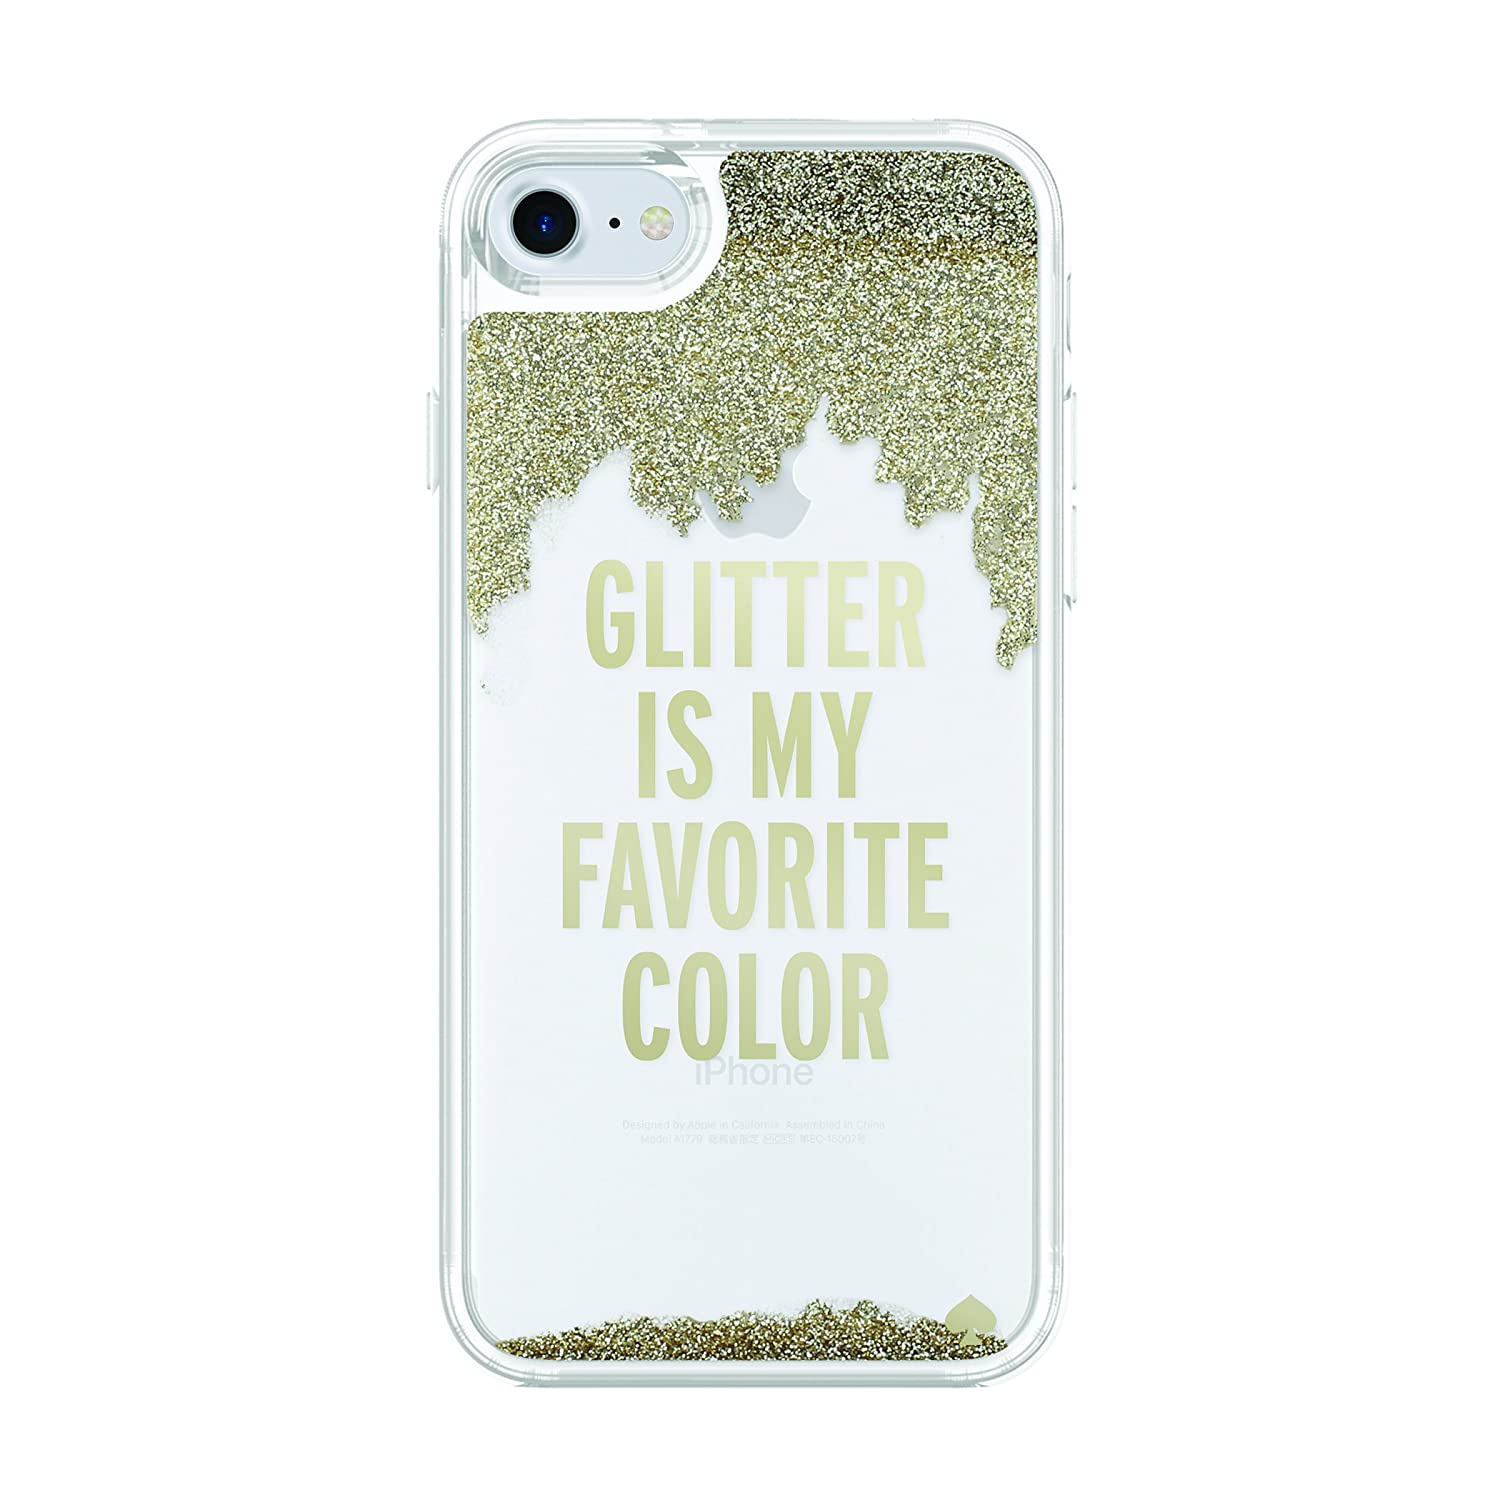 size 40 ddc5a 4167d kate spade new york Liquid Glitter Case for iPhone 8 - also compatible with  iPhone 7 - Glitter is My Favorite Color Gold / Clear